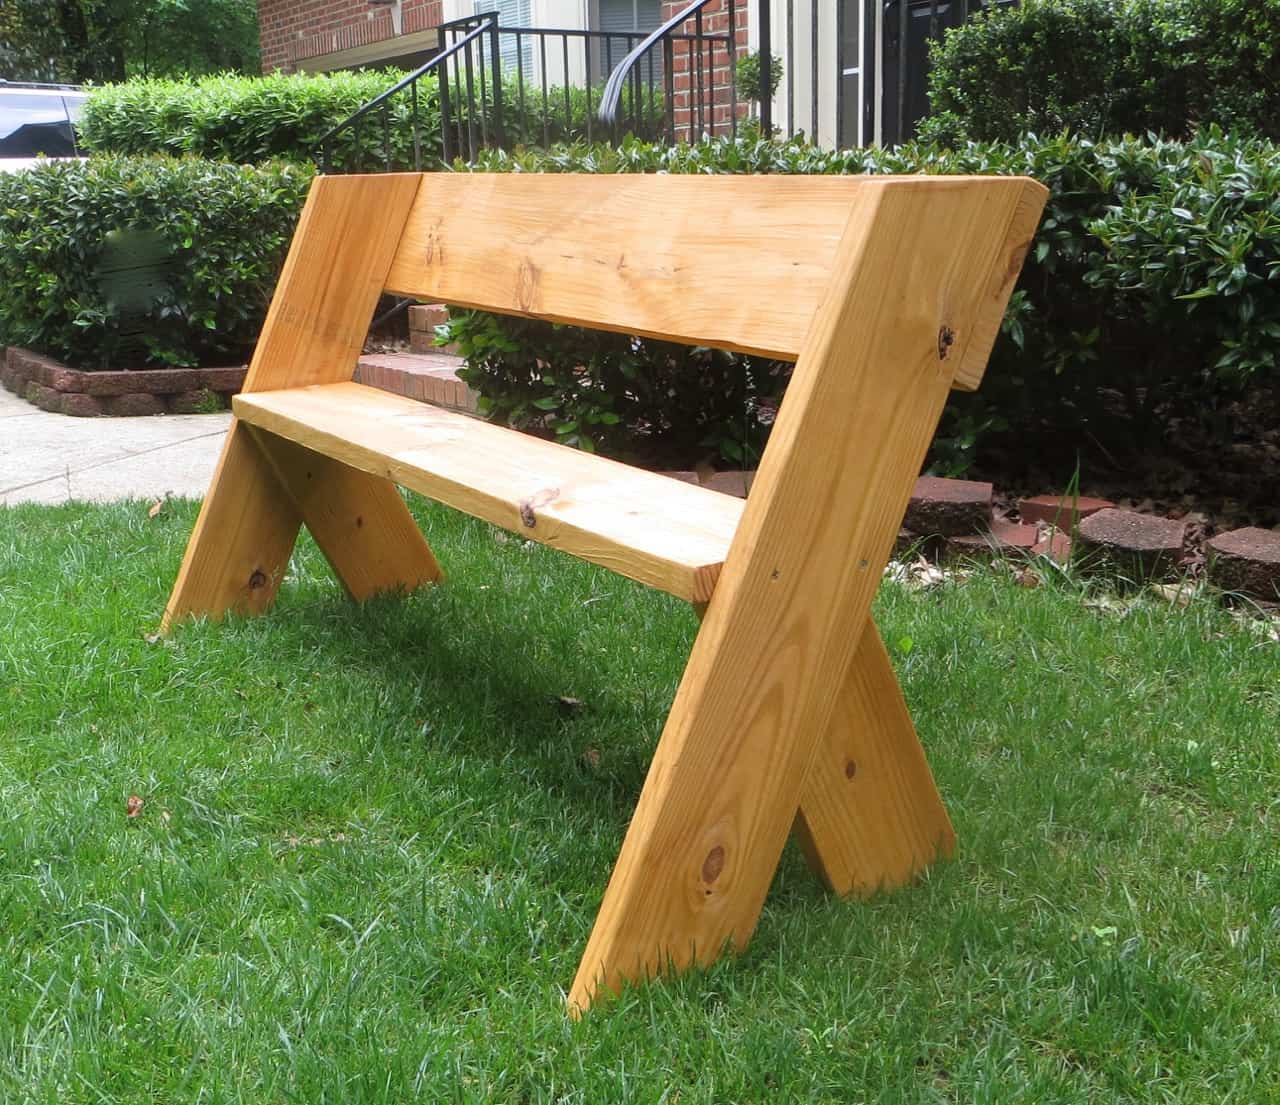 Super Diy Outdoor Wood Projects Andrewgaddart Wooden Chair Designs For Living Room Andrewgaddartcom